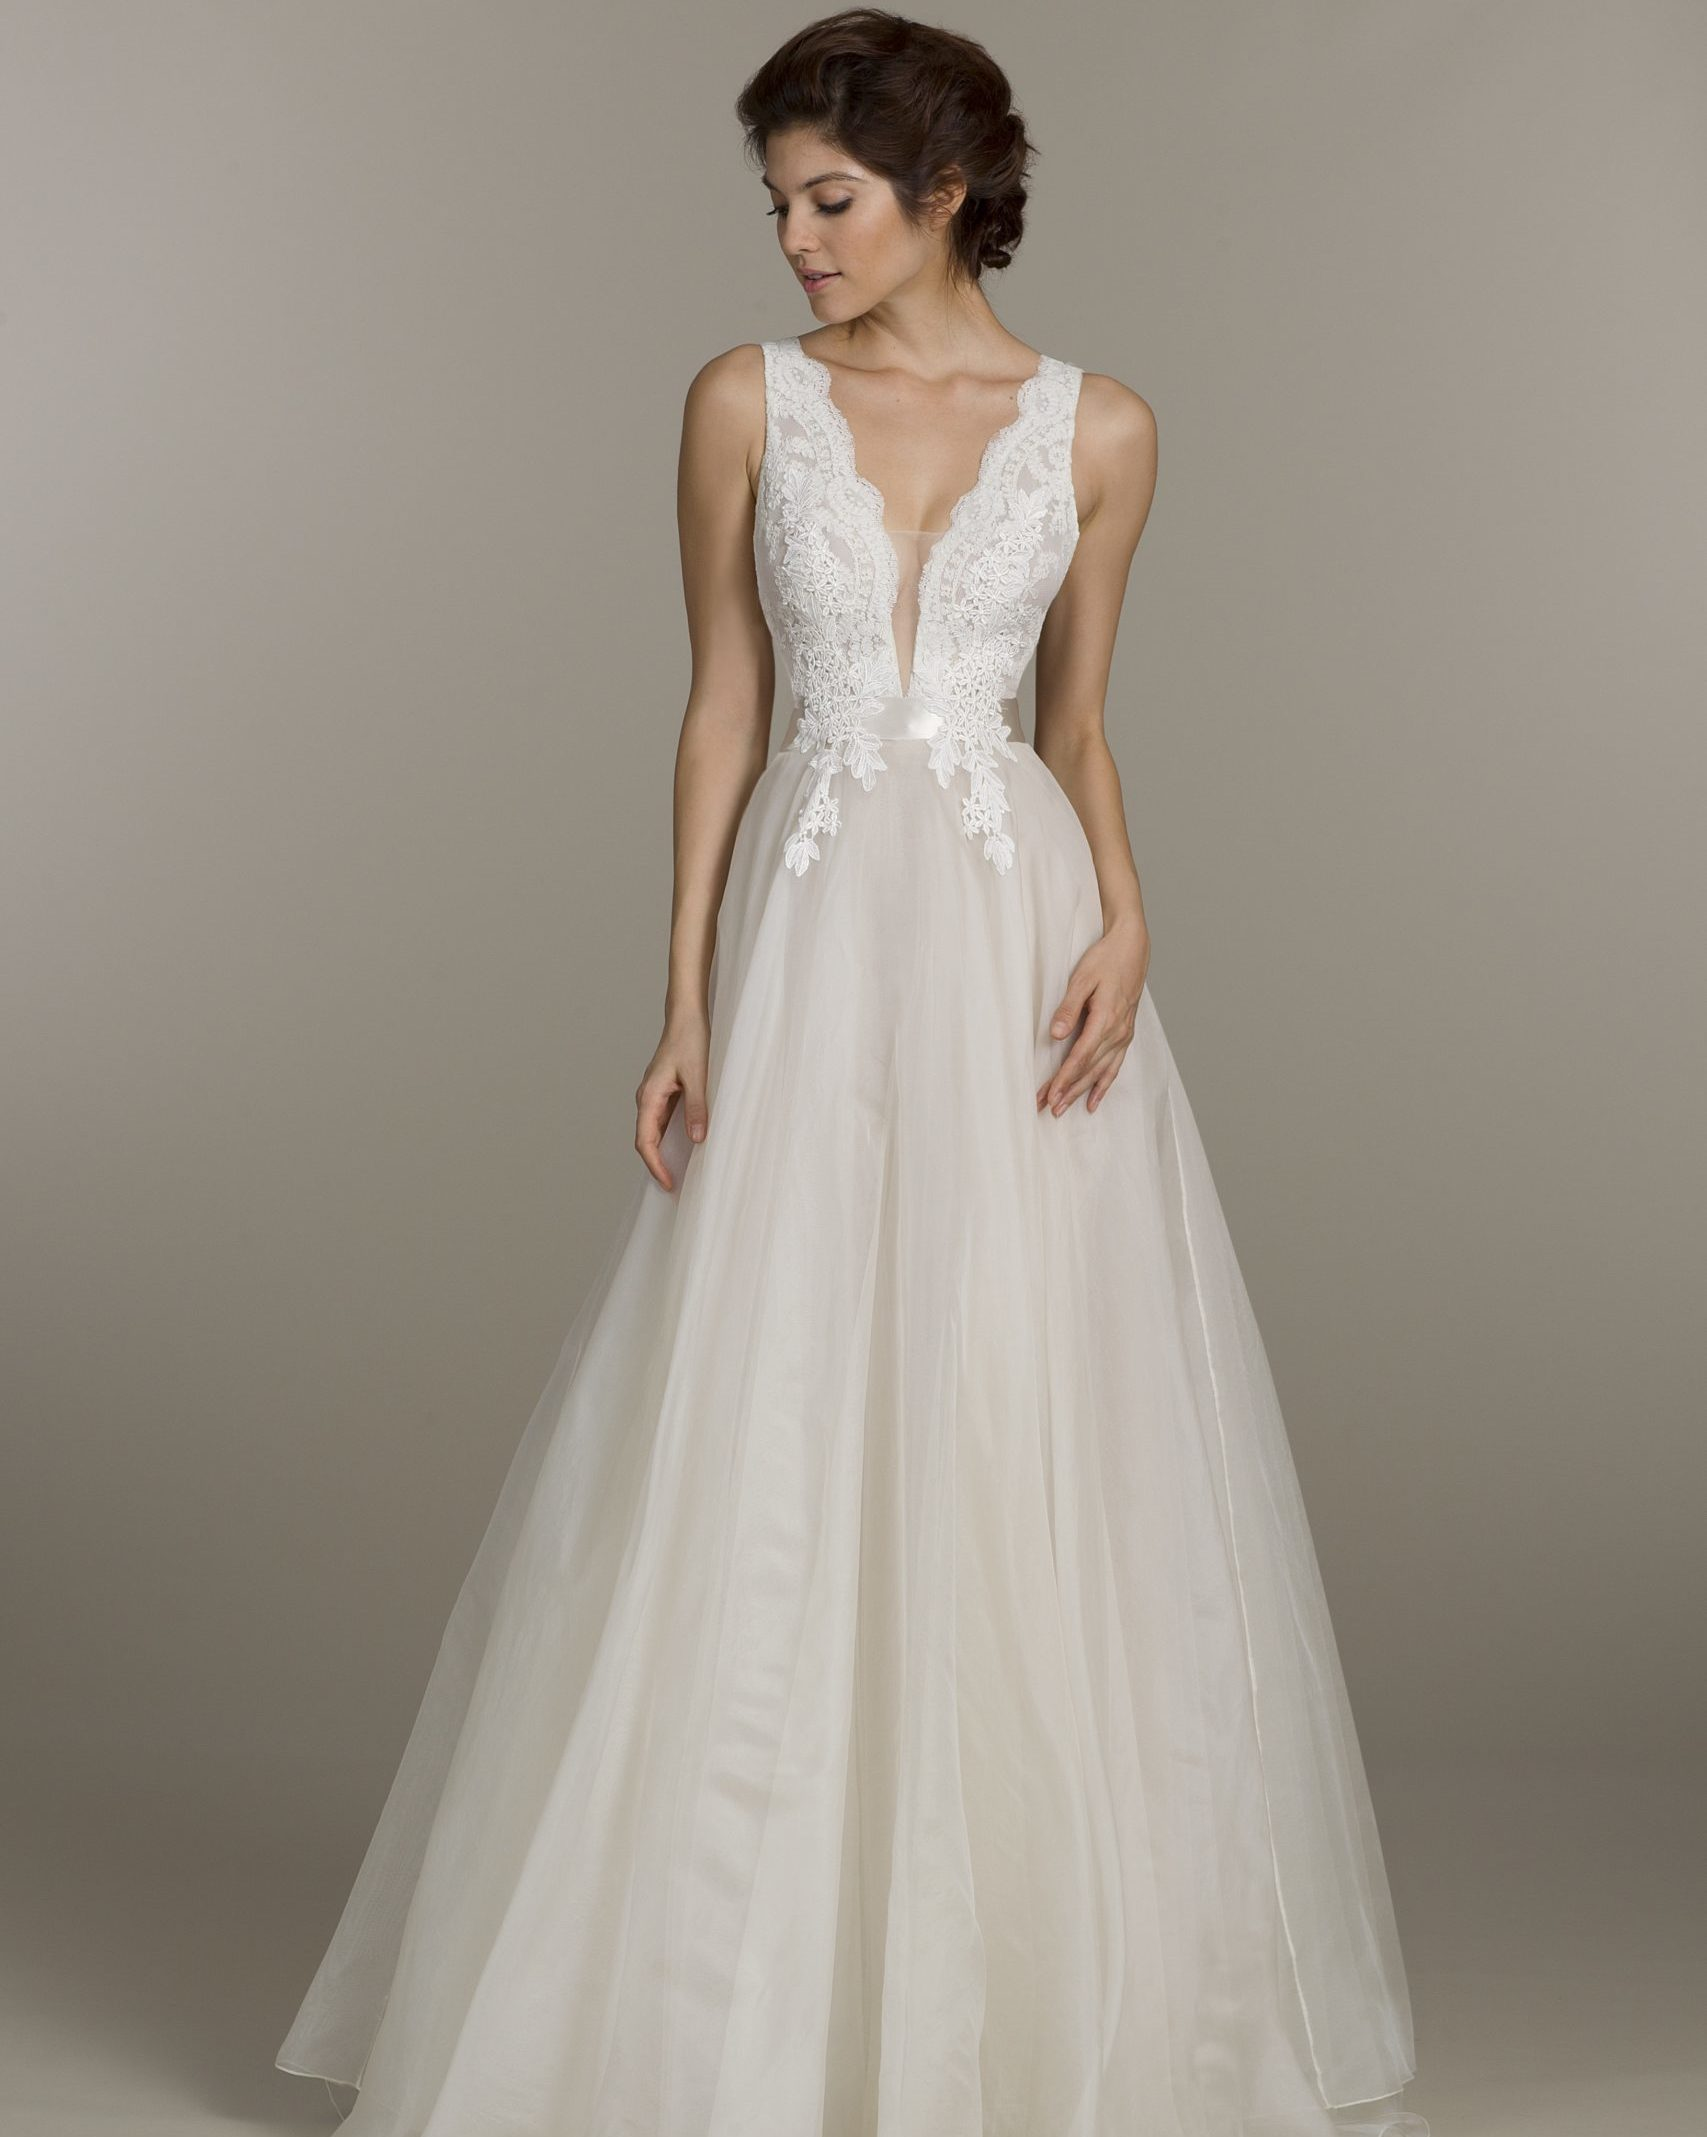 Introducing our wedding dress designer outlet of Sale dresses at Hannah Elizabeth. Click to view all available wedding gowns here.